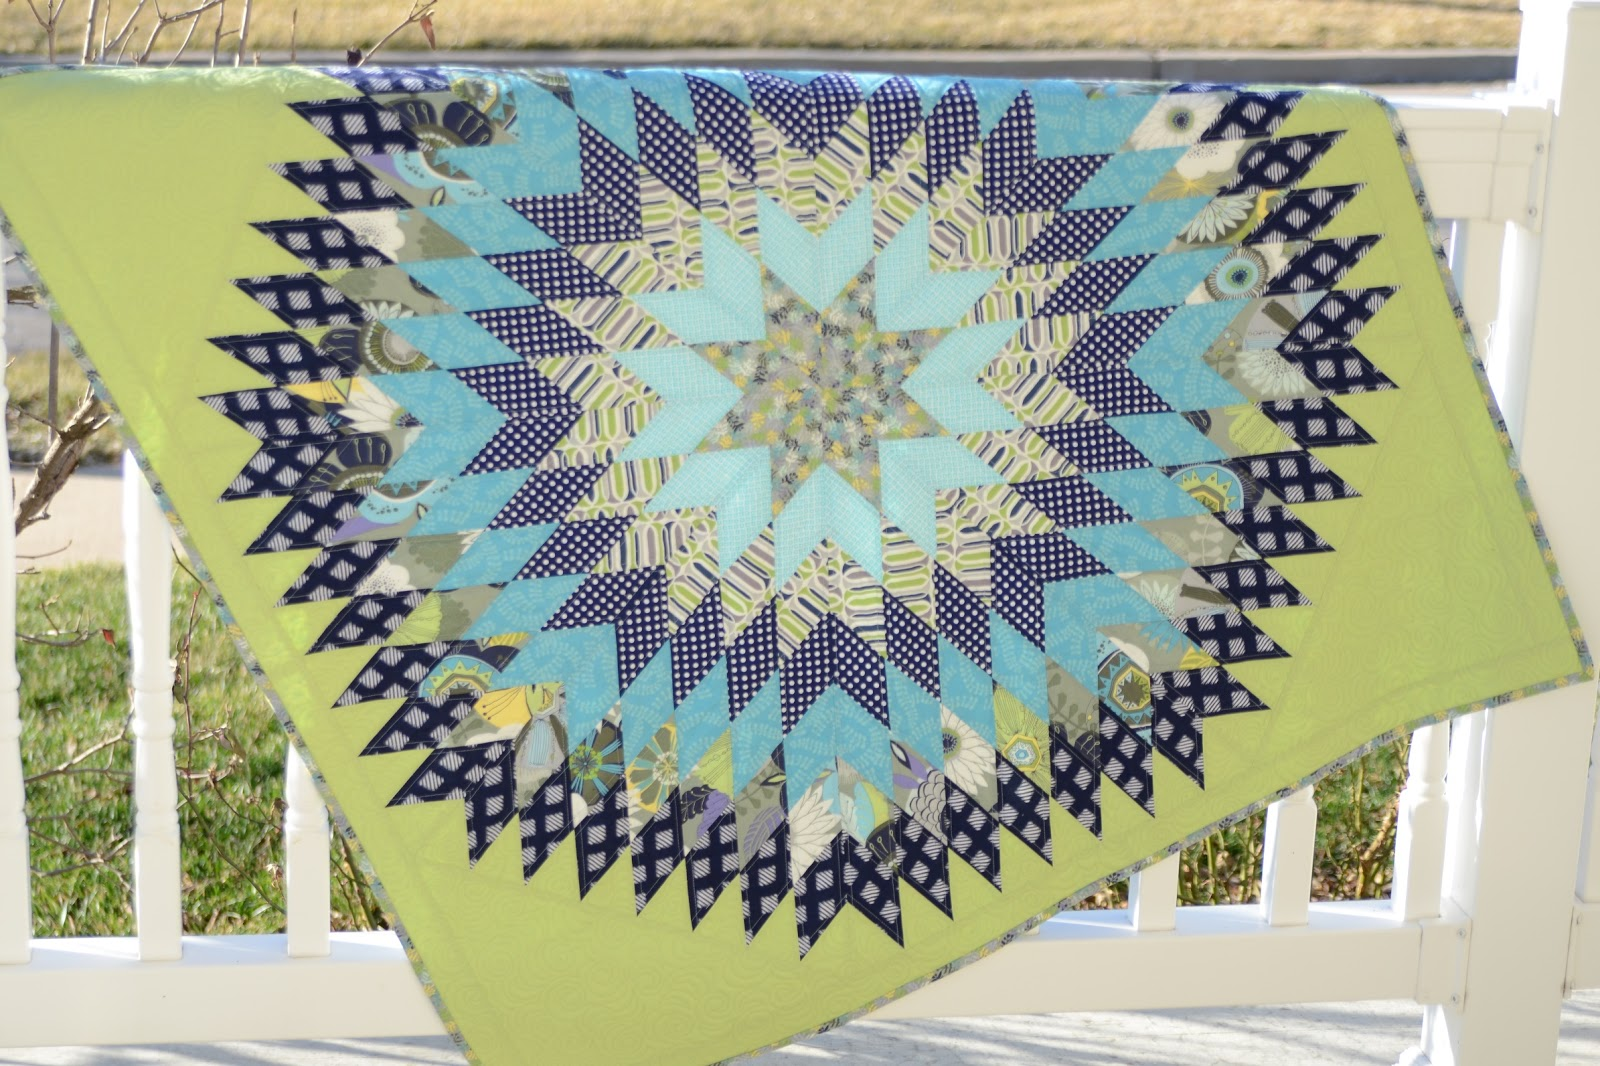 Hyacinth Quilt Designs: A free pattern and more! : sunburst quilt - Adamdwight.com